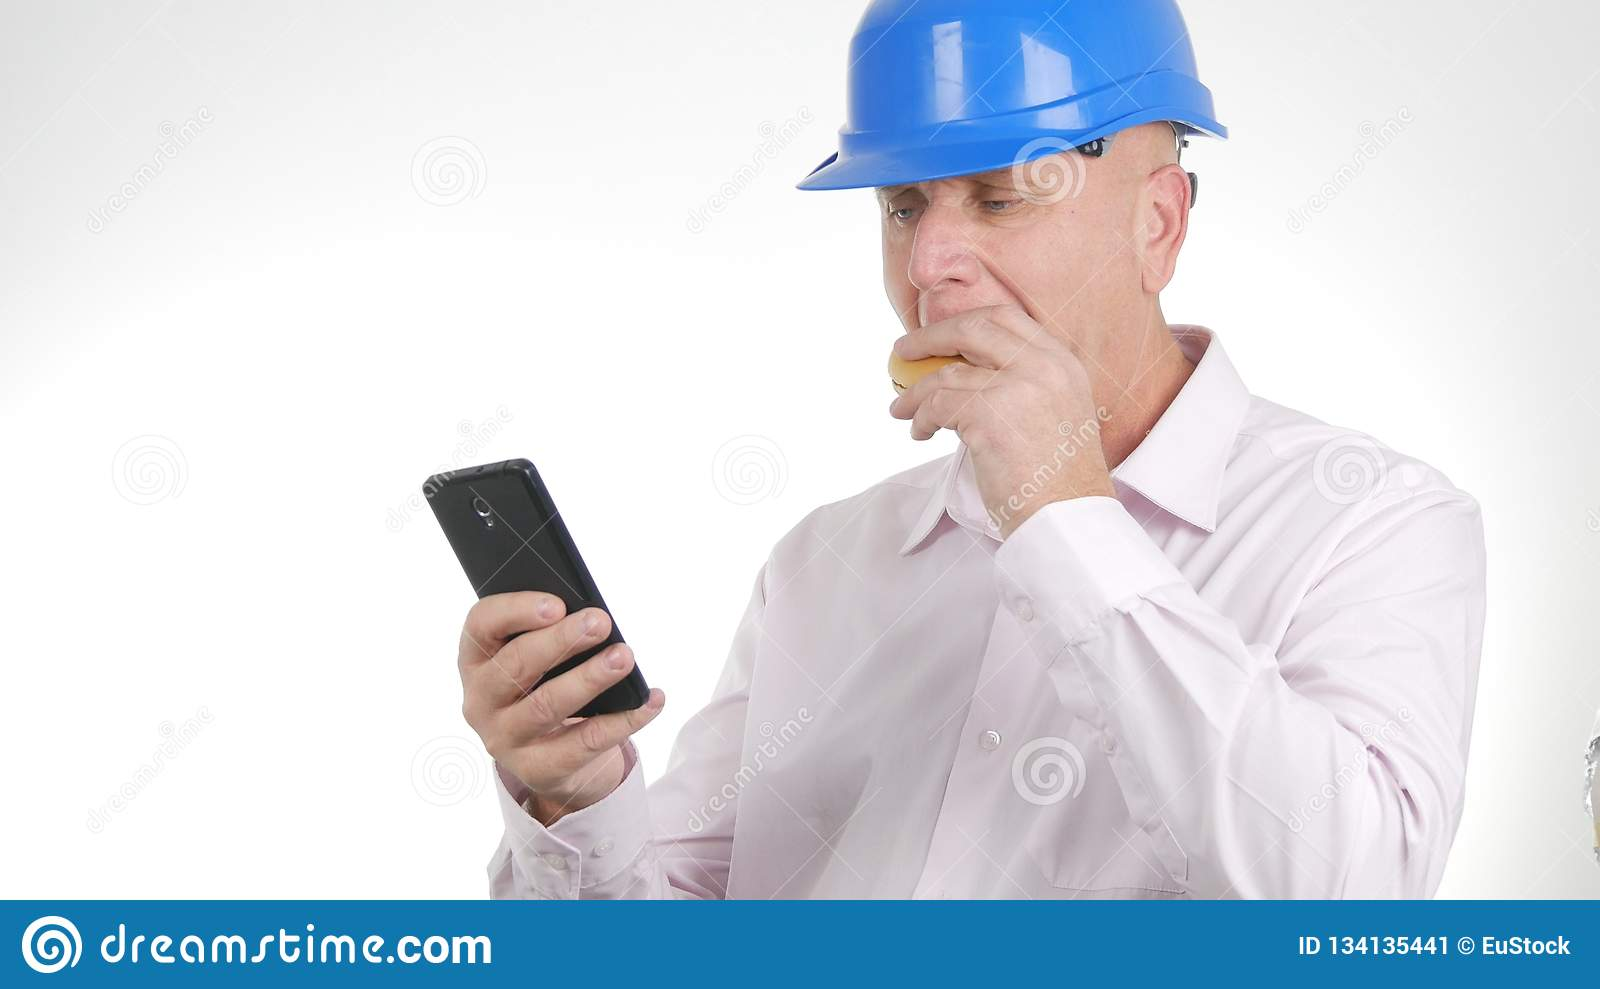 Engineer Image Eating a Sandwich and Text Using Mobile Phone